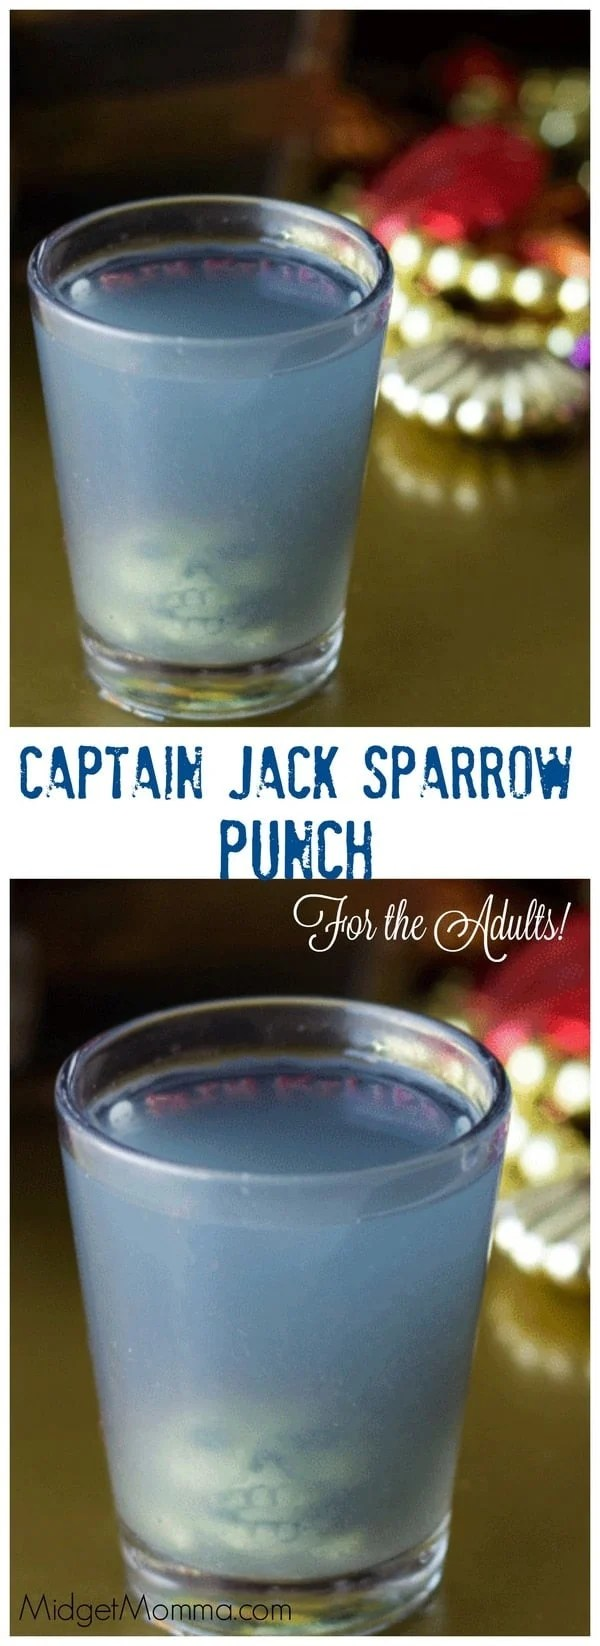 Captain Jack Sparrow Alcoholic Punch For adults